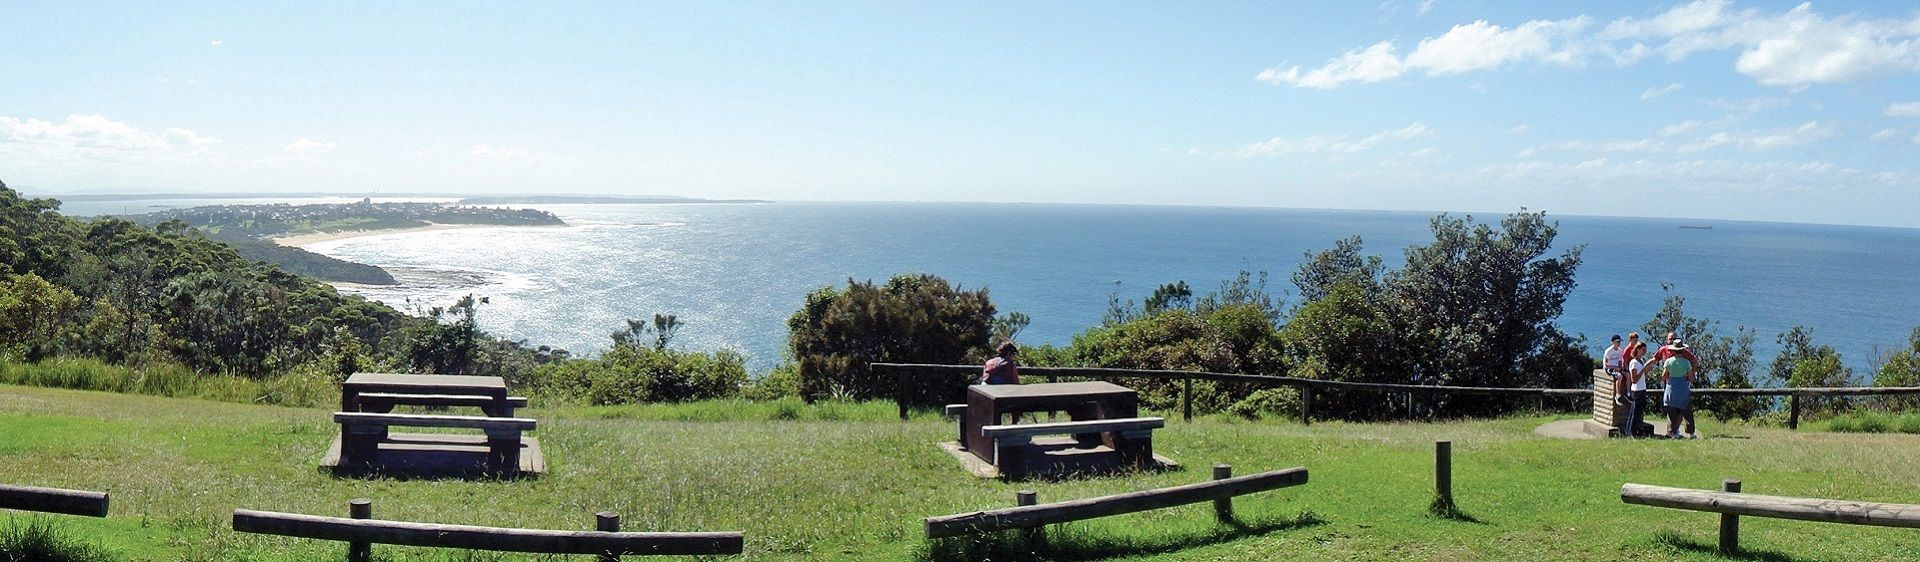 Crackneck Point Lookout, The Entrance